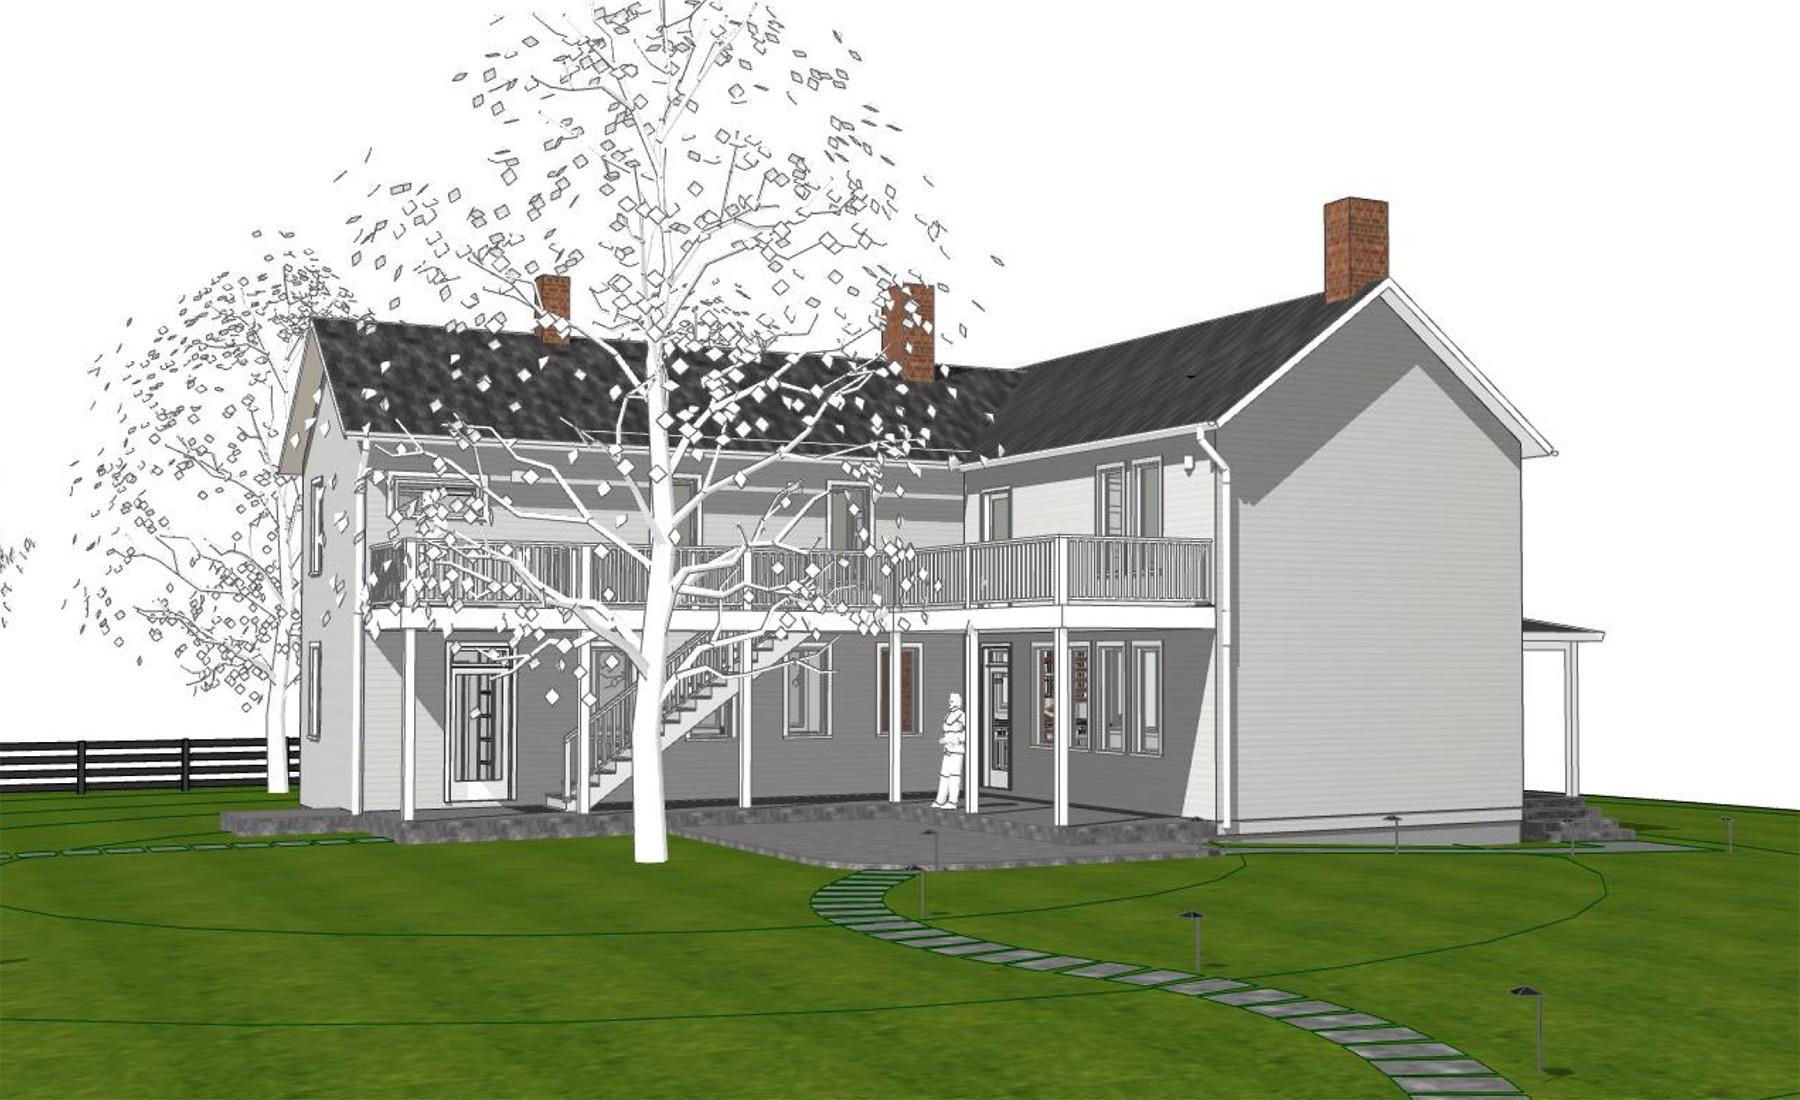 RENDERING OF PROPOSED SOUTH ELEVATION